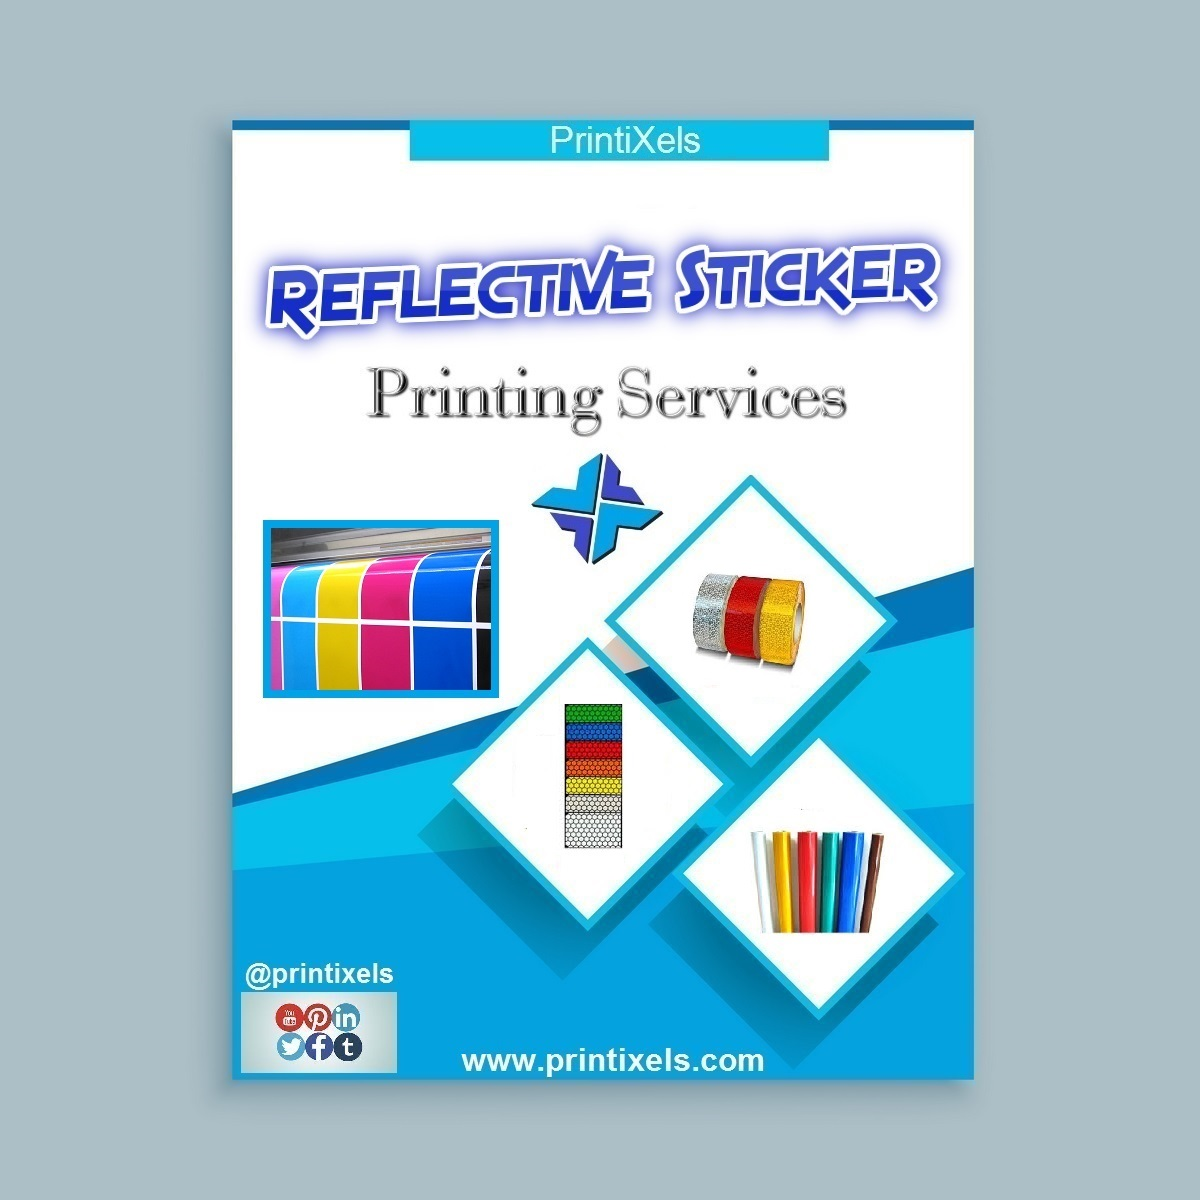 Reflective sticker printing services printixels philippines